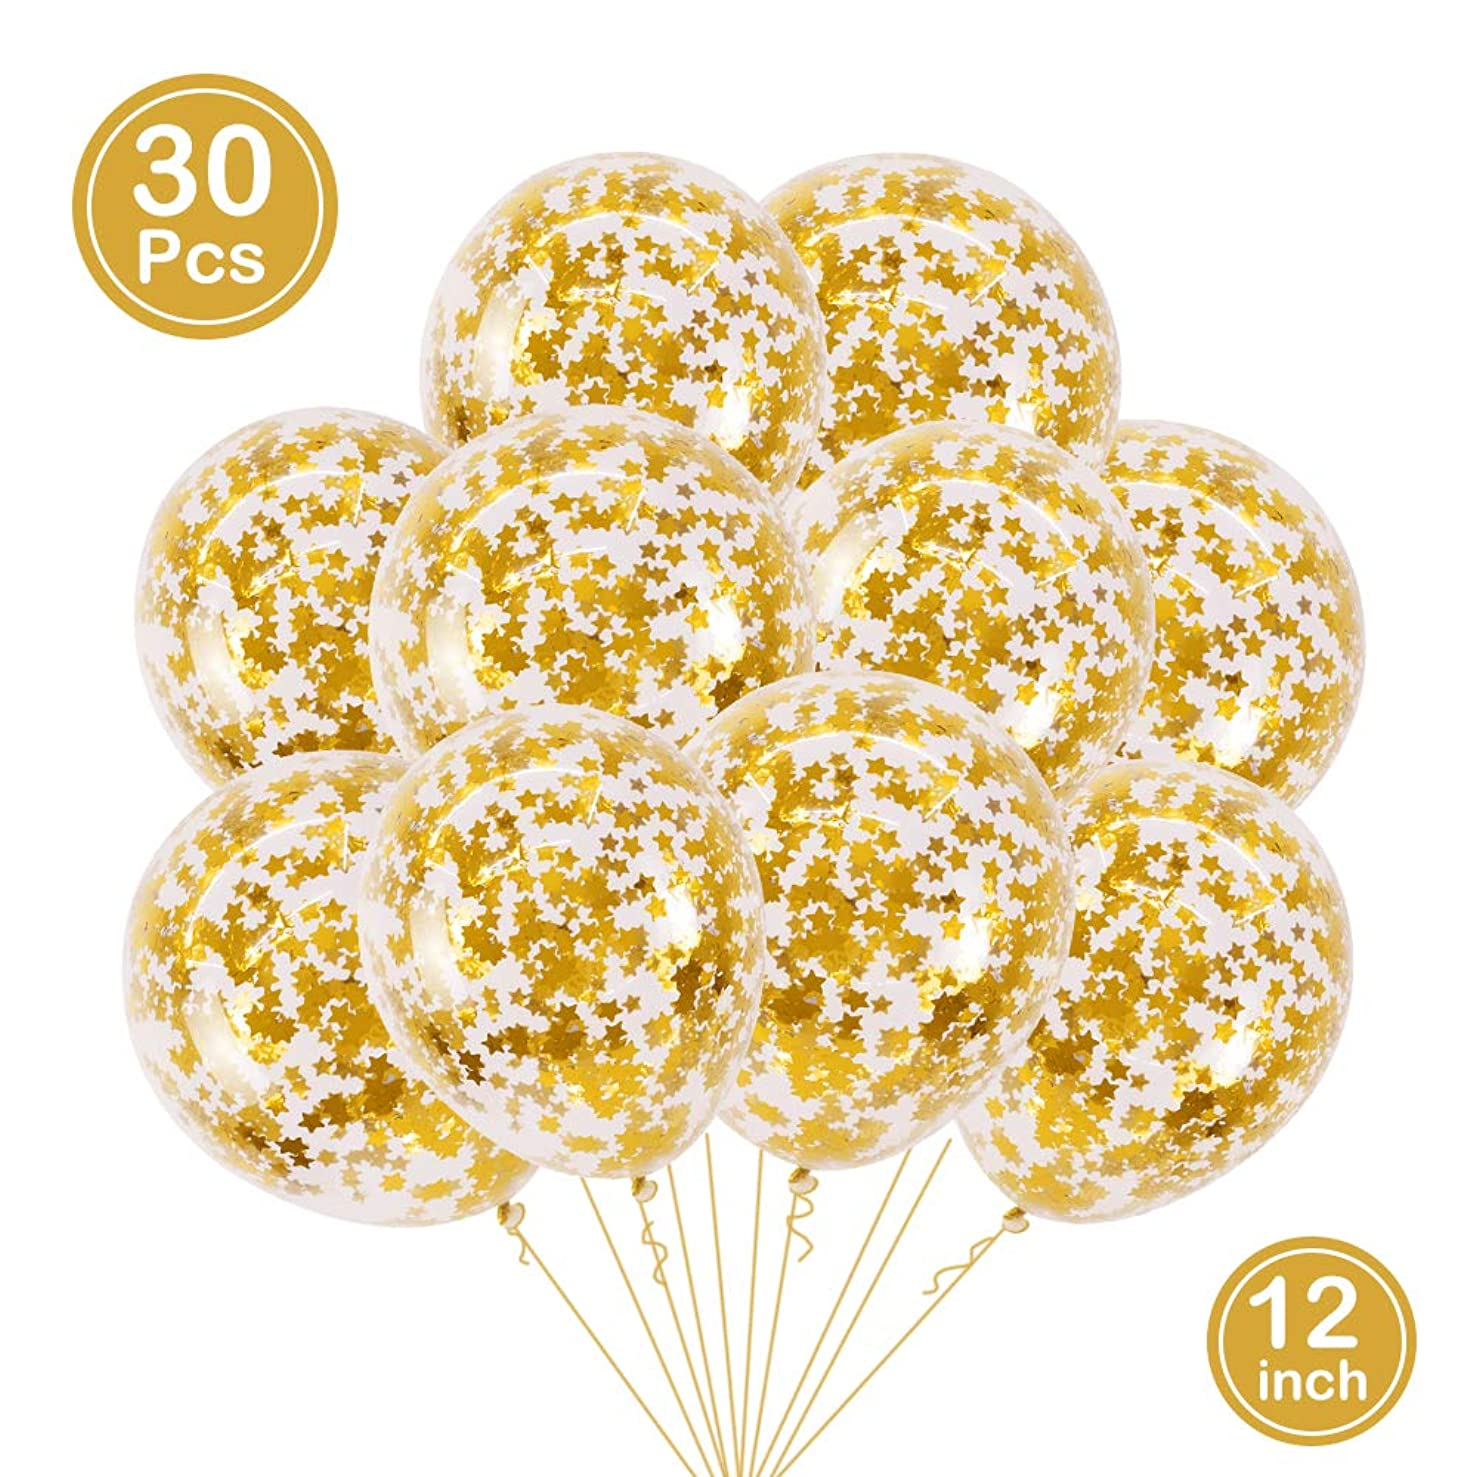 BALONAR 30pcs Gold Star Pre-Filled Confetti Balloons Party Latex Balloons with Gold Star Confetti for Birthday Party Wedding Supplies Decorations (Gold Star)